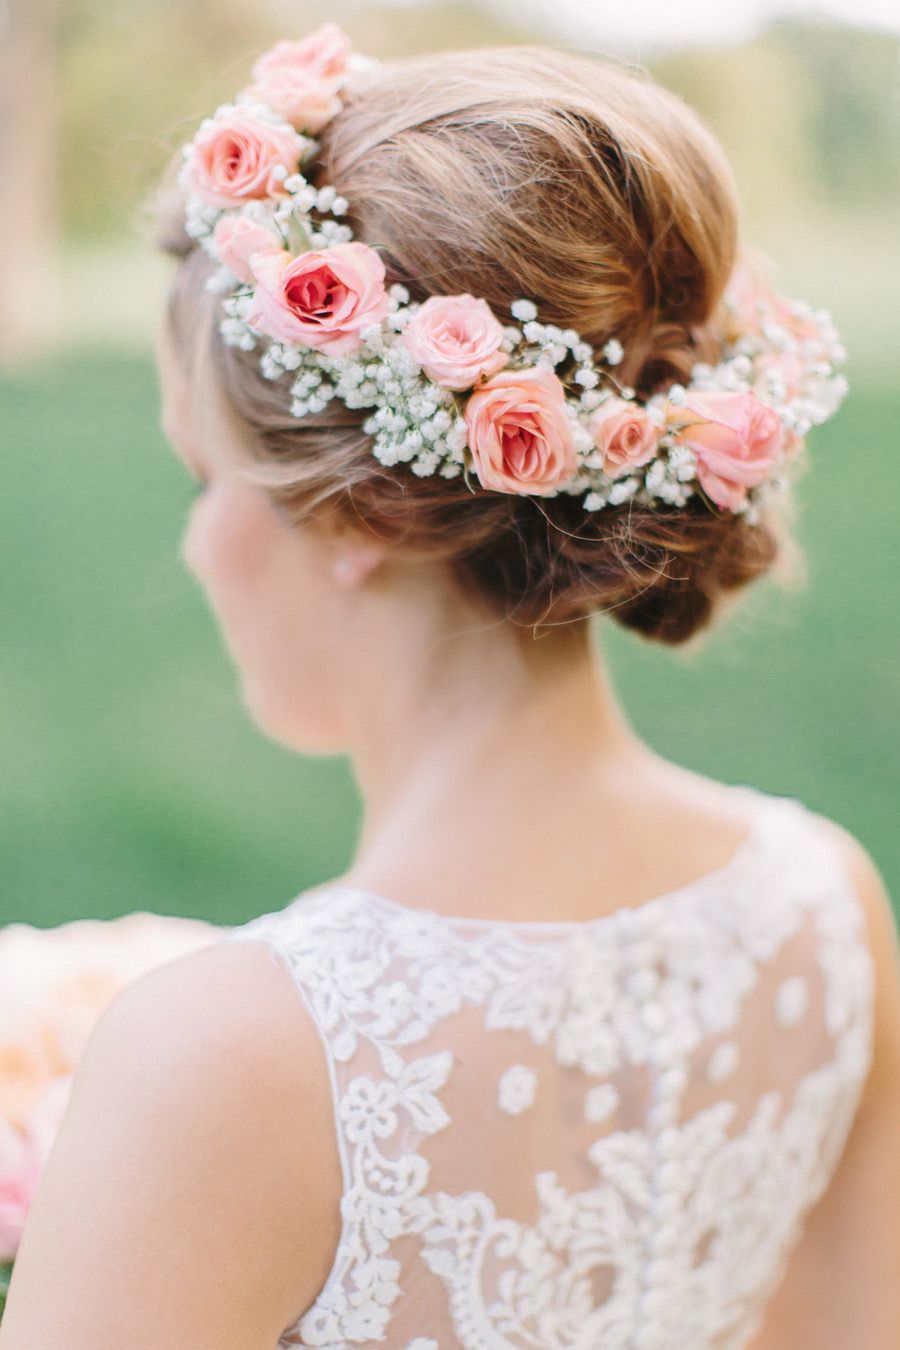 Glamorous pink khorassan ballroom wedding pinterest flower hair accessories hairstyles flower crown photography mike cassimatis mnc photography mnc photography view entire slideshow most loved pics of izmirmasajfo